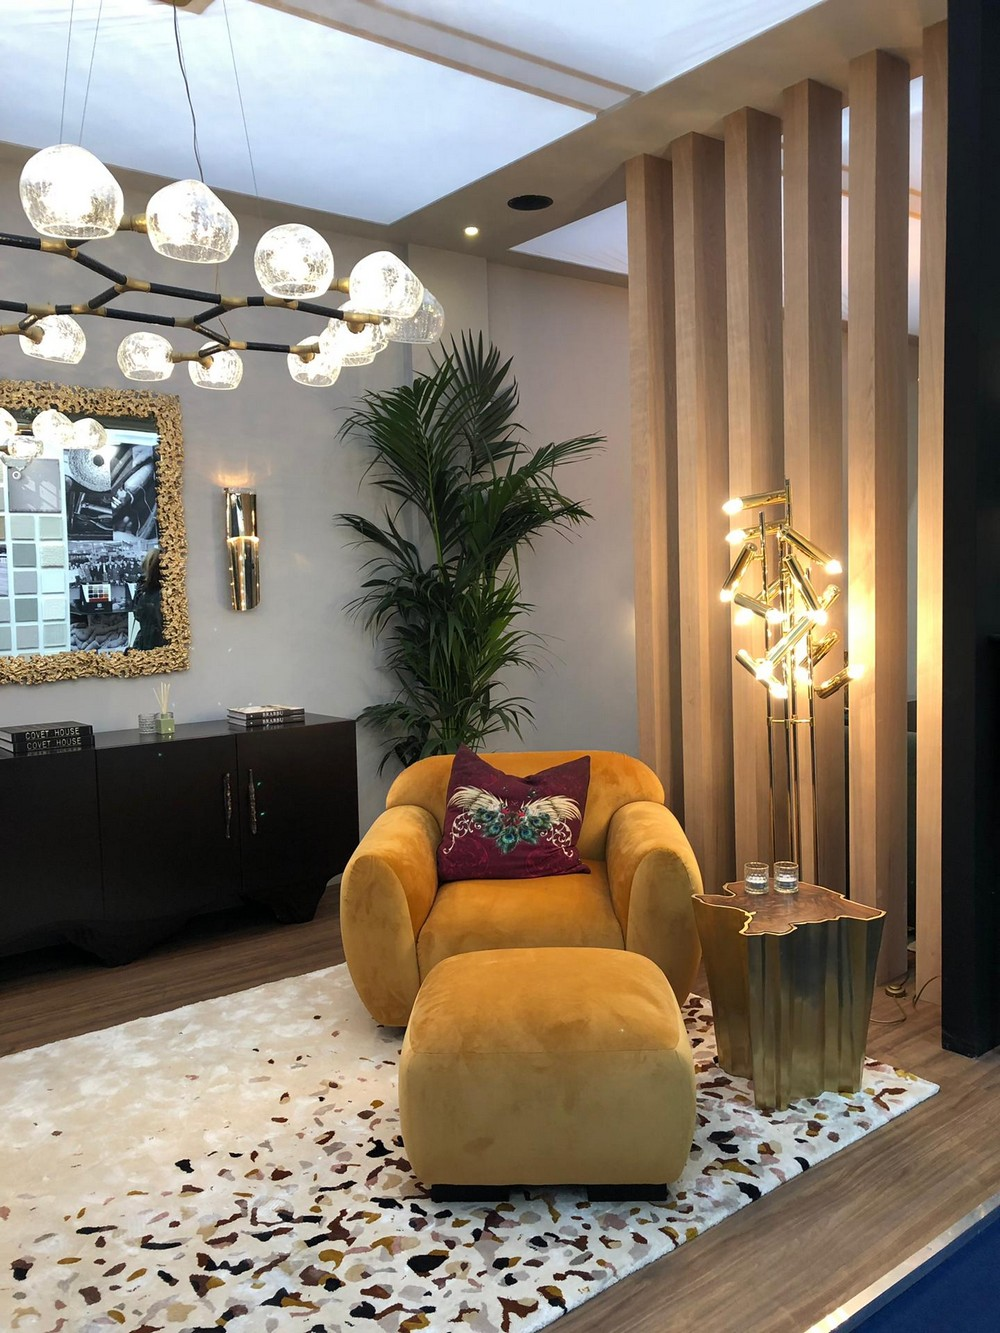 CovetED Unveiled The Best Home Decor Inspirations From Decorex 2019 decorex CovetED Unveiled The Best Home Decor Inspirations From Decorex 2019 CovetED Unveiled The Best Home Decor Inspirations From Decorex 2019 2